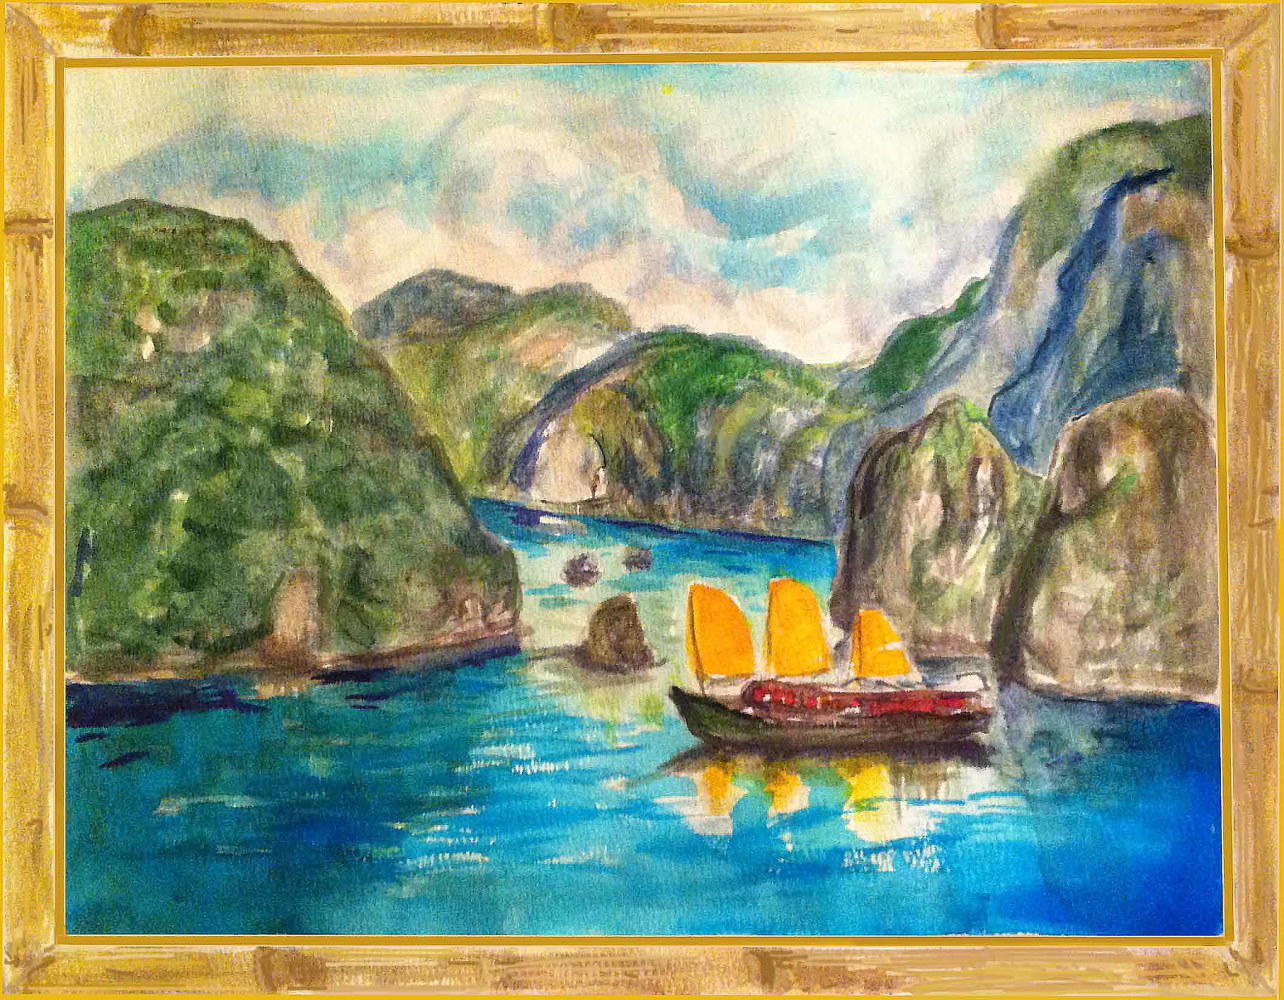 Painting Ha long bay, Vietnam by Anastasia O'melveny